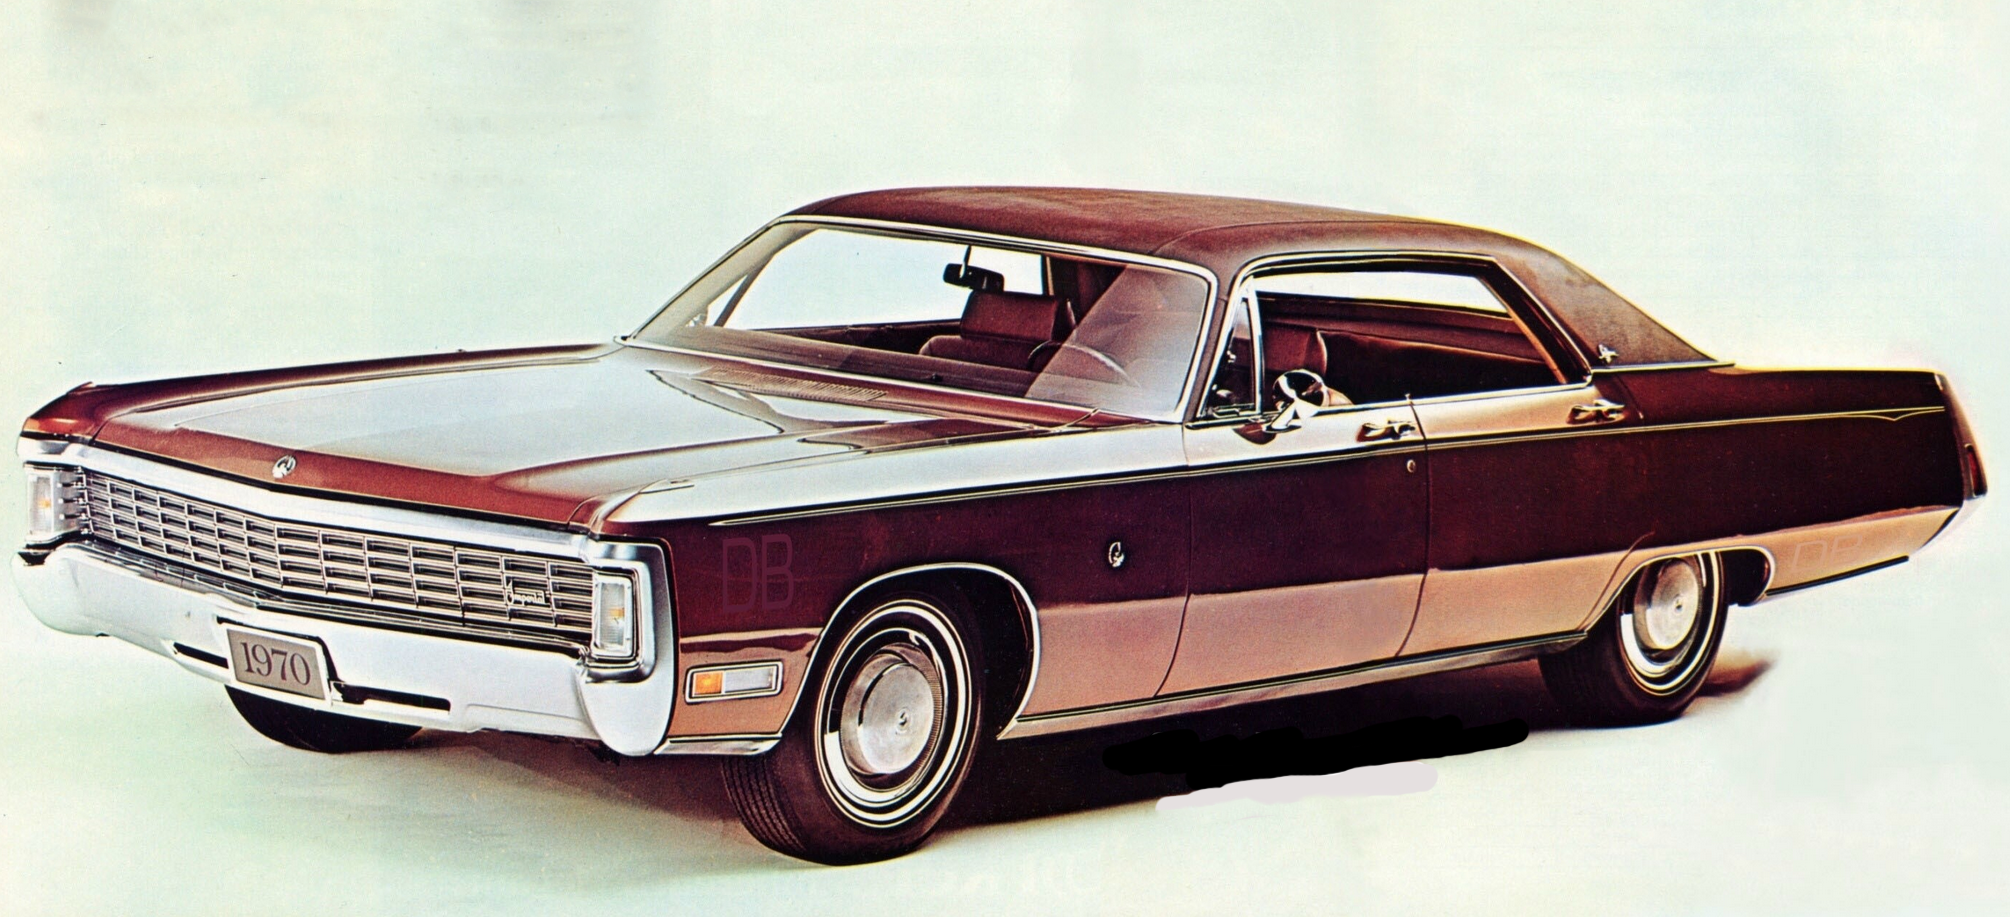 1970 Chrysler Imperial Review